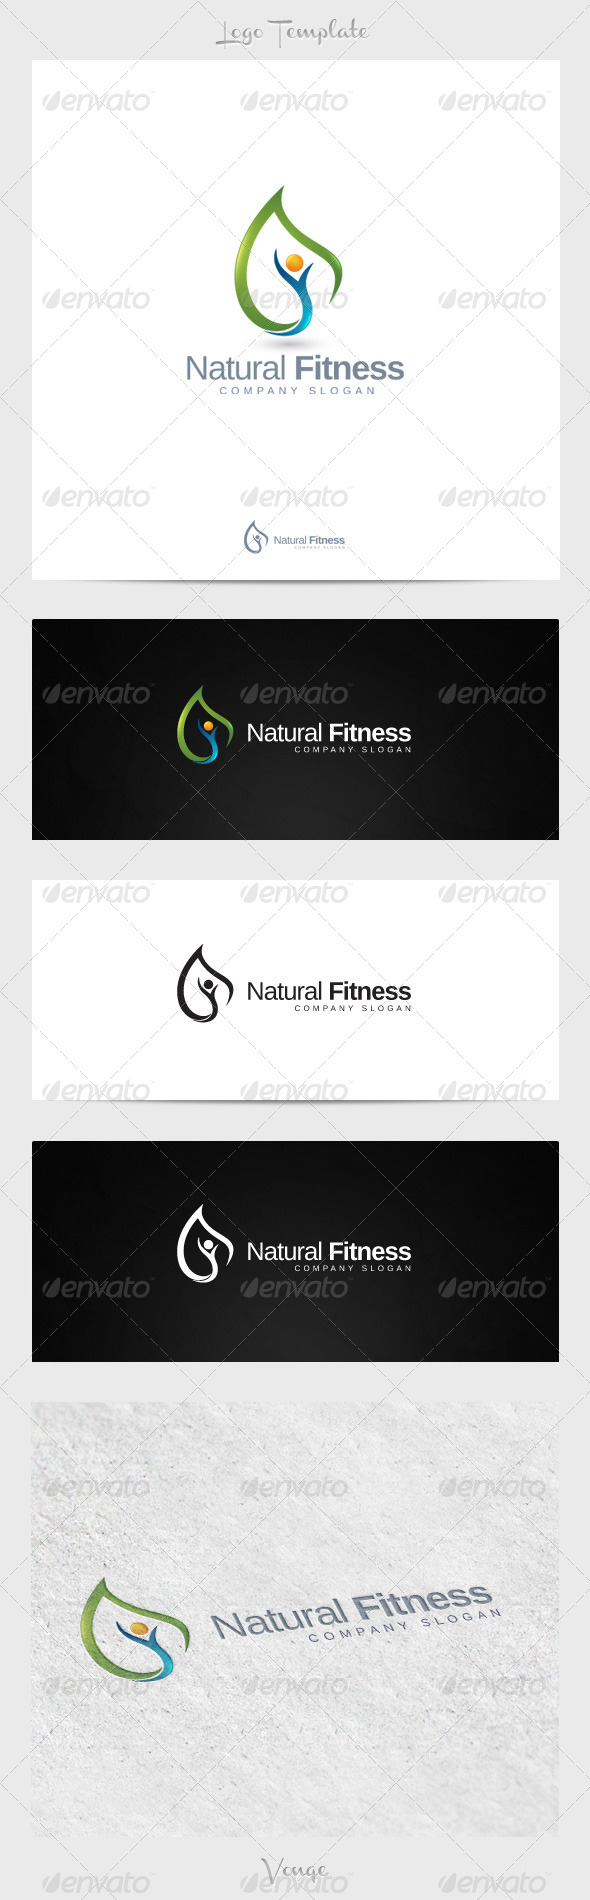 Natural Fitness - Nature Logo Templates